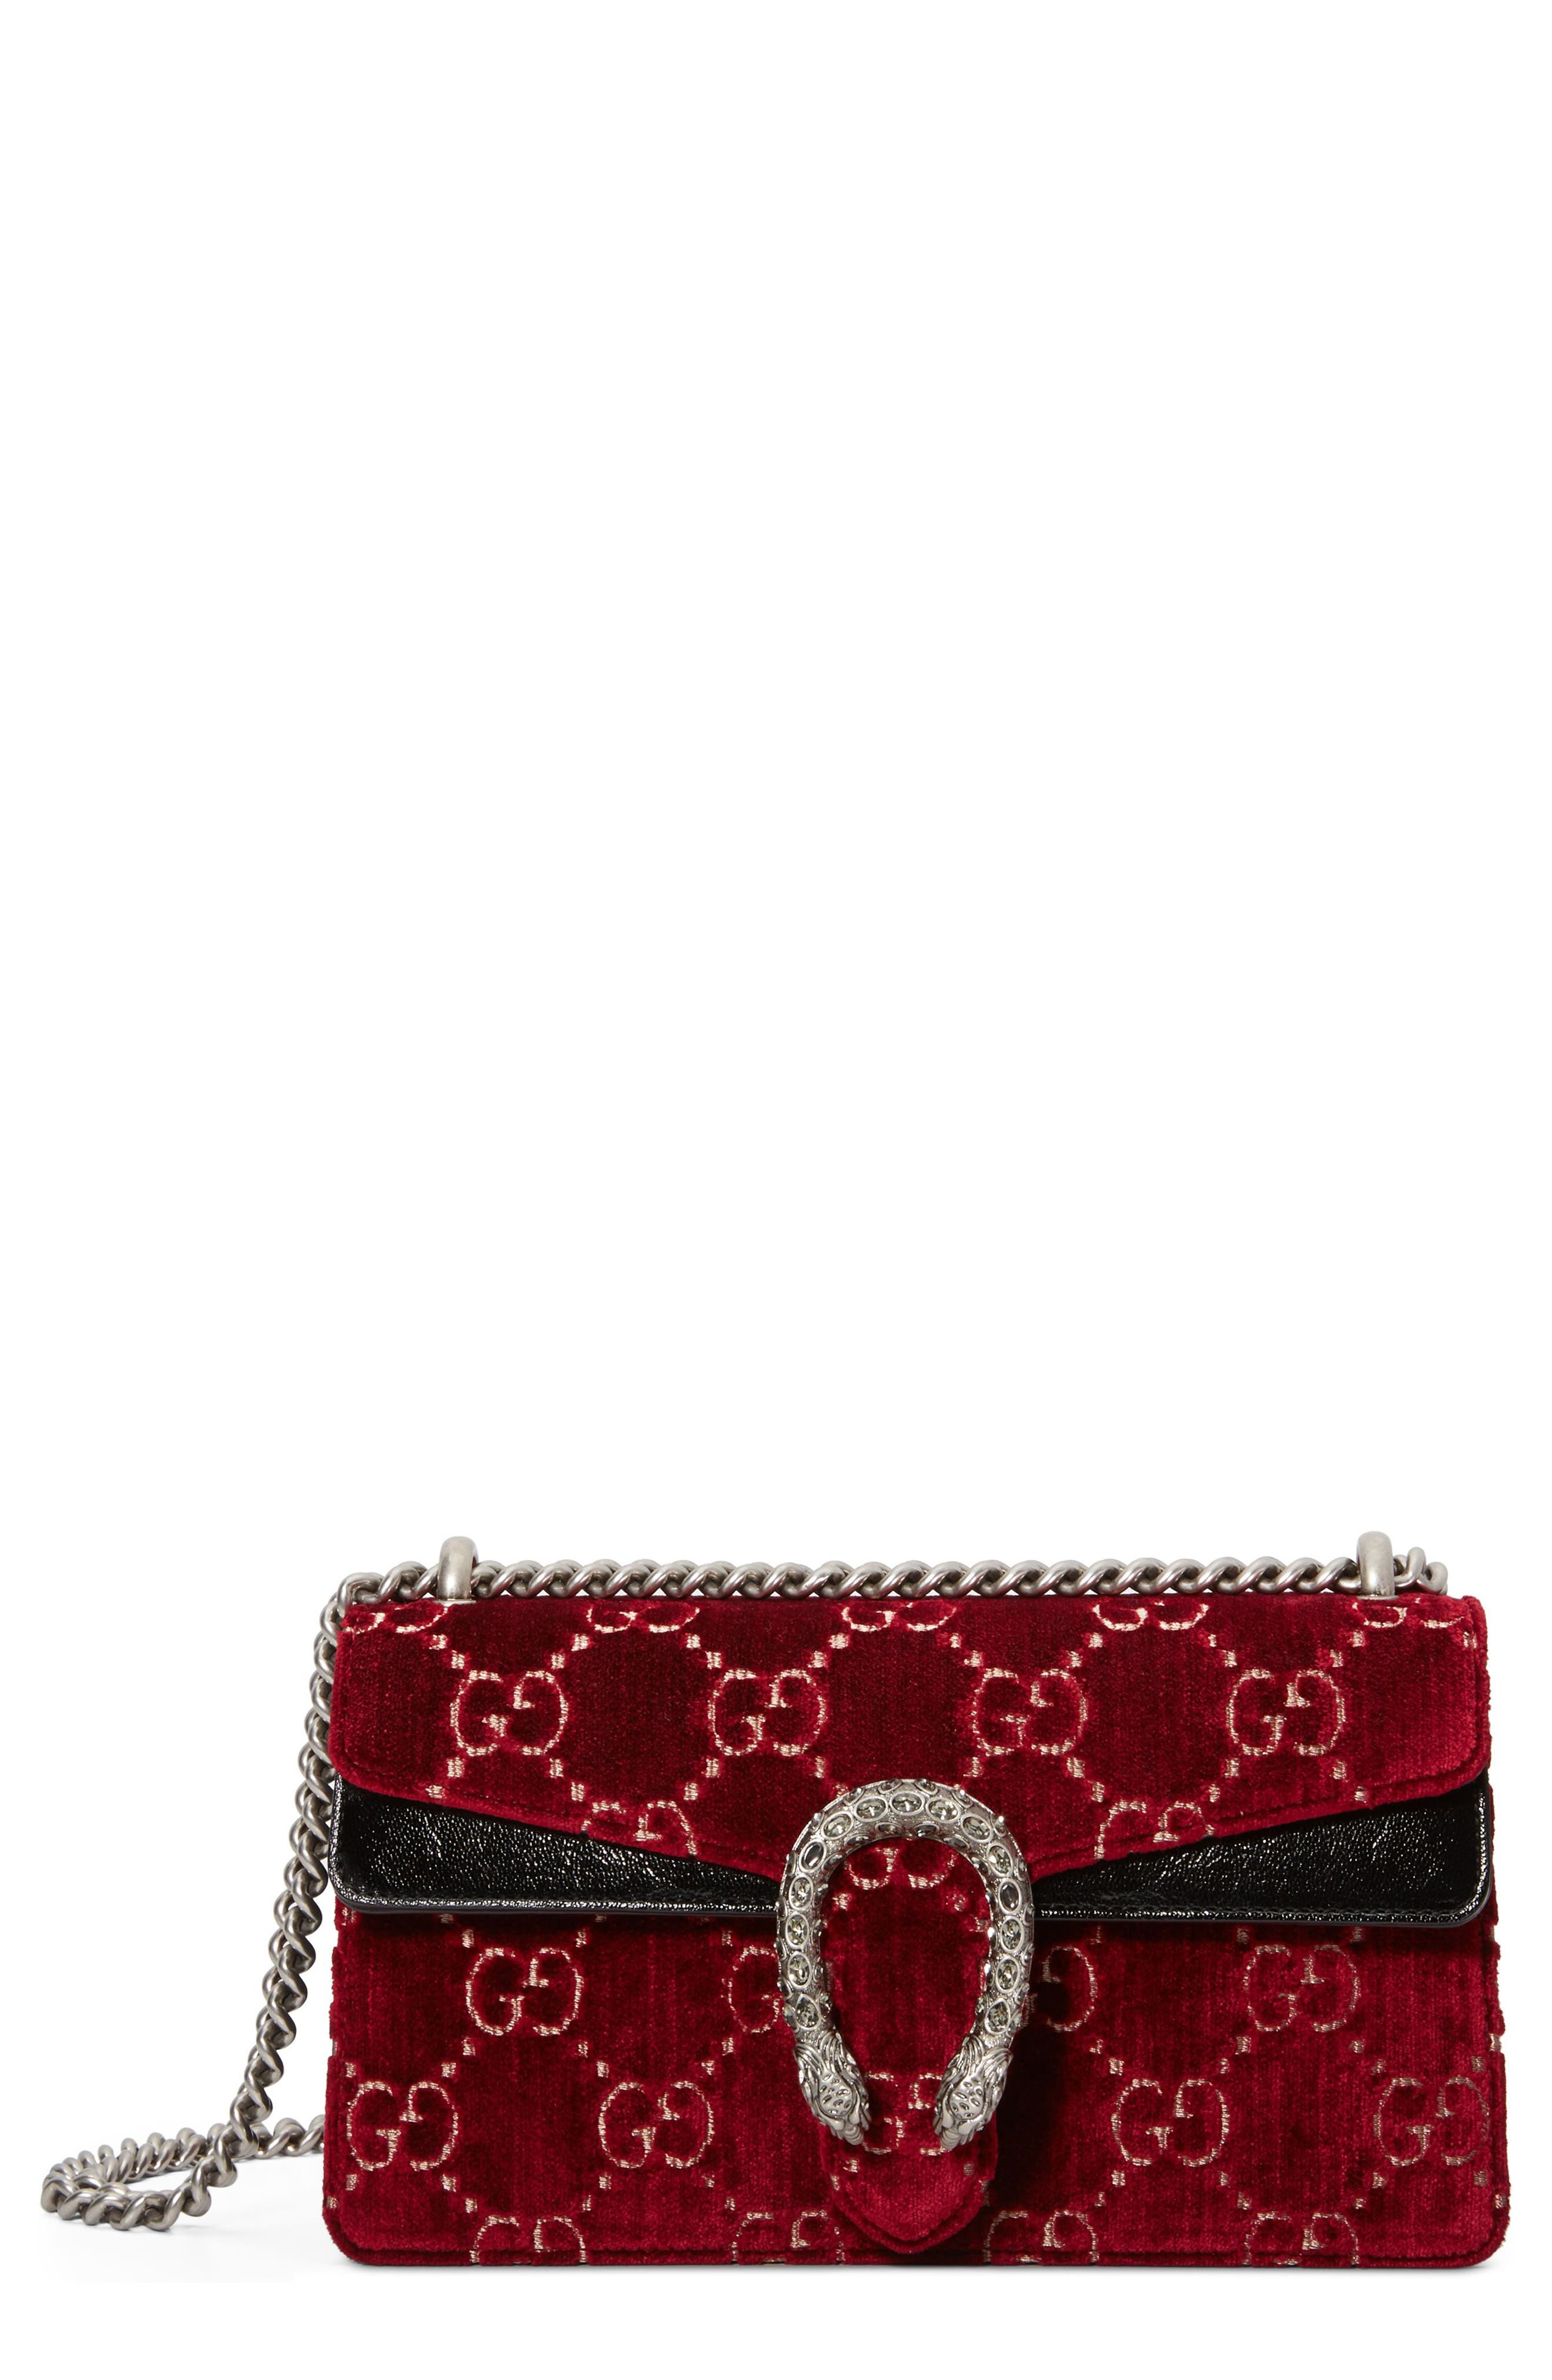 Small Dionysus GG Velvet Shoulder Bag,                             Main thumbnail 1, color,                             Red Cipria/ Black Diamond